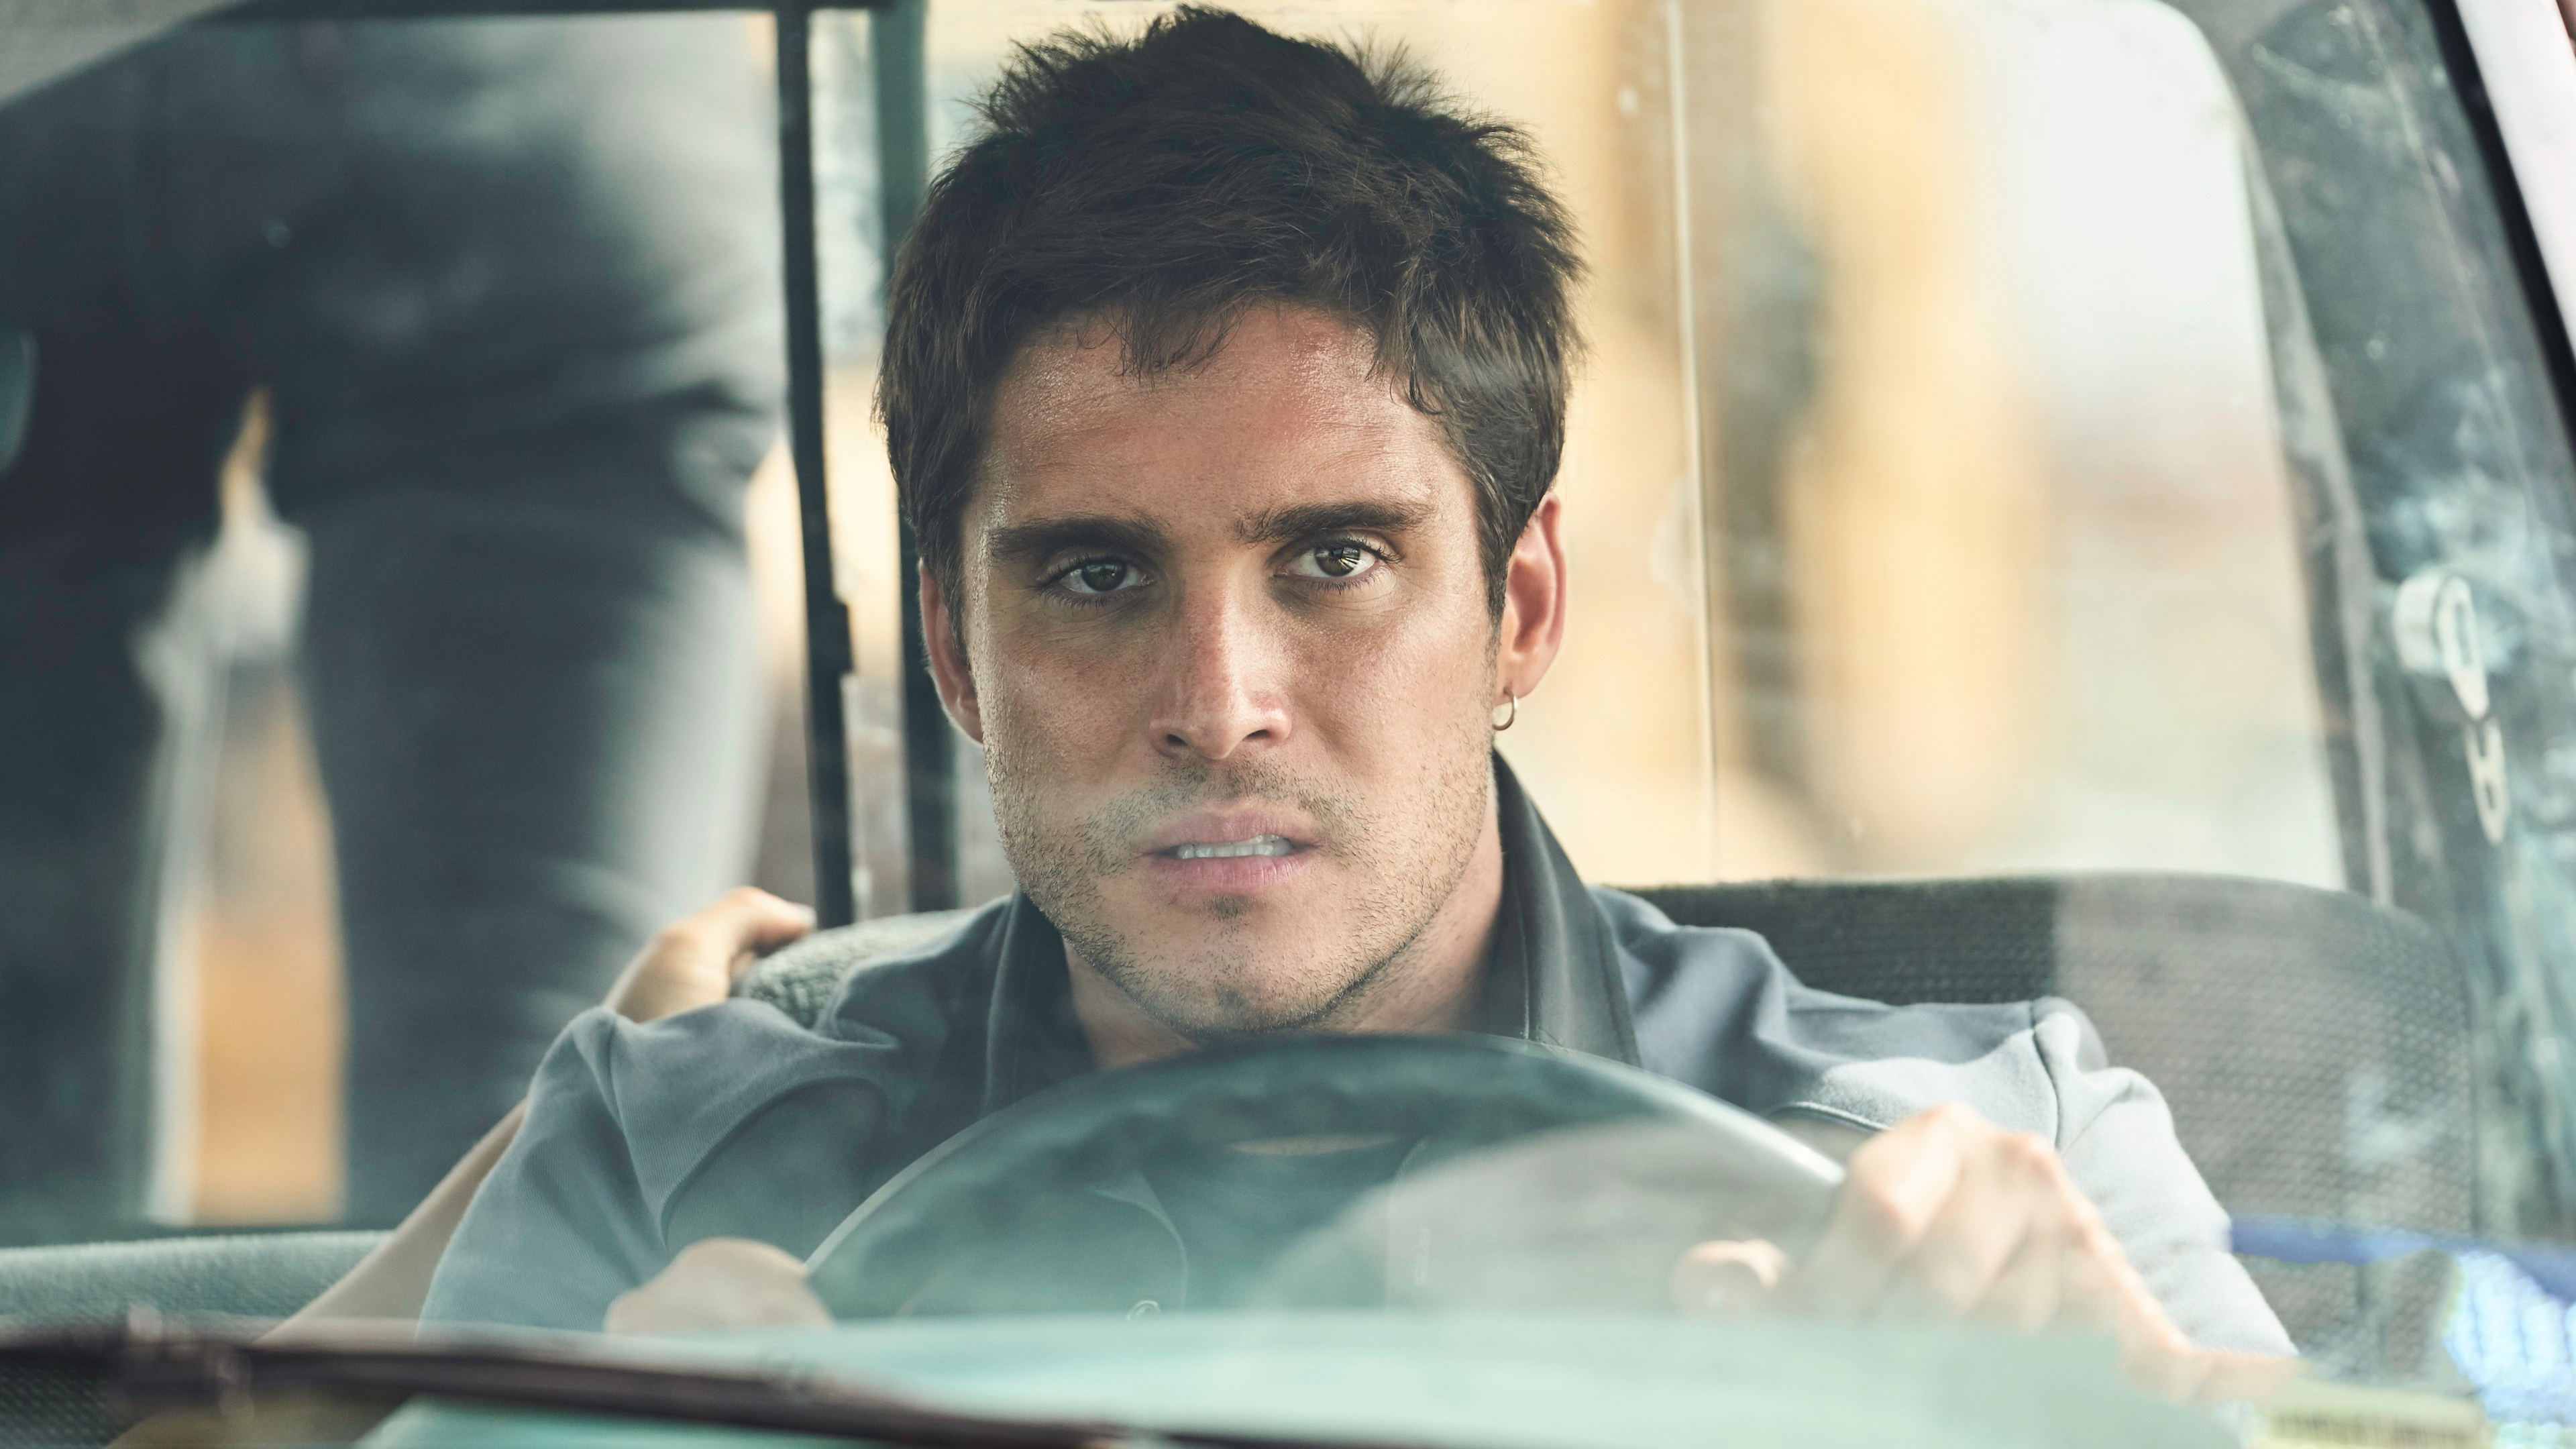 diego boneta in terminator dark fate 4k 1558219659 - Diego Boneta In Terminator Dark Fate 4k - terminator dark fate wallpapers, terminator 6 wallpapers, movies wallpapers, hd-wallpapers, 4k-wallpapers, 2019 movies wallpapers